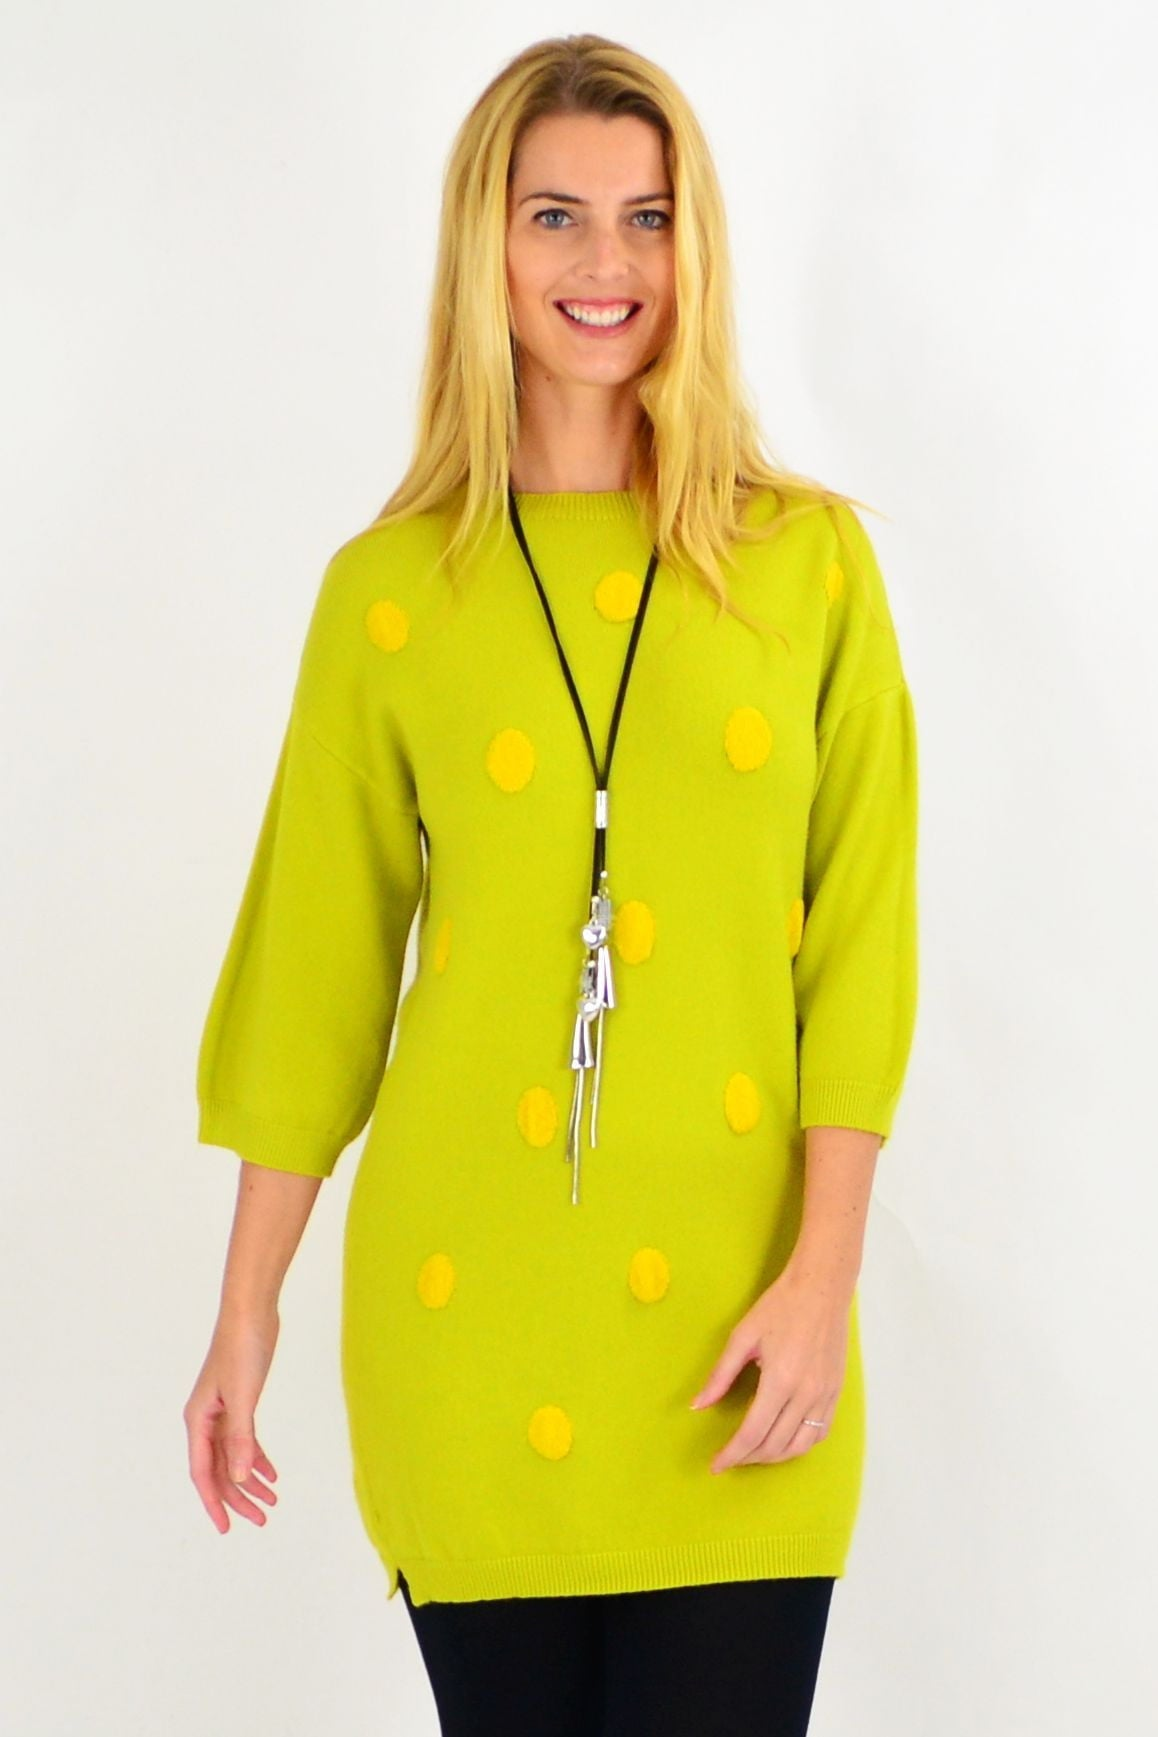 Lucy Lime Green Knit Tunic Jumper | I Love Tunics | Tunic Tops | Tunic | Tunic Dresses  | womens clothing online